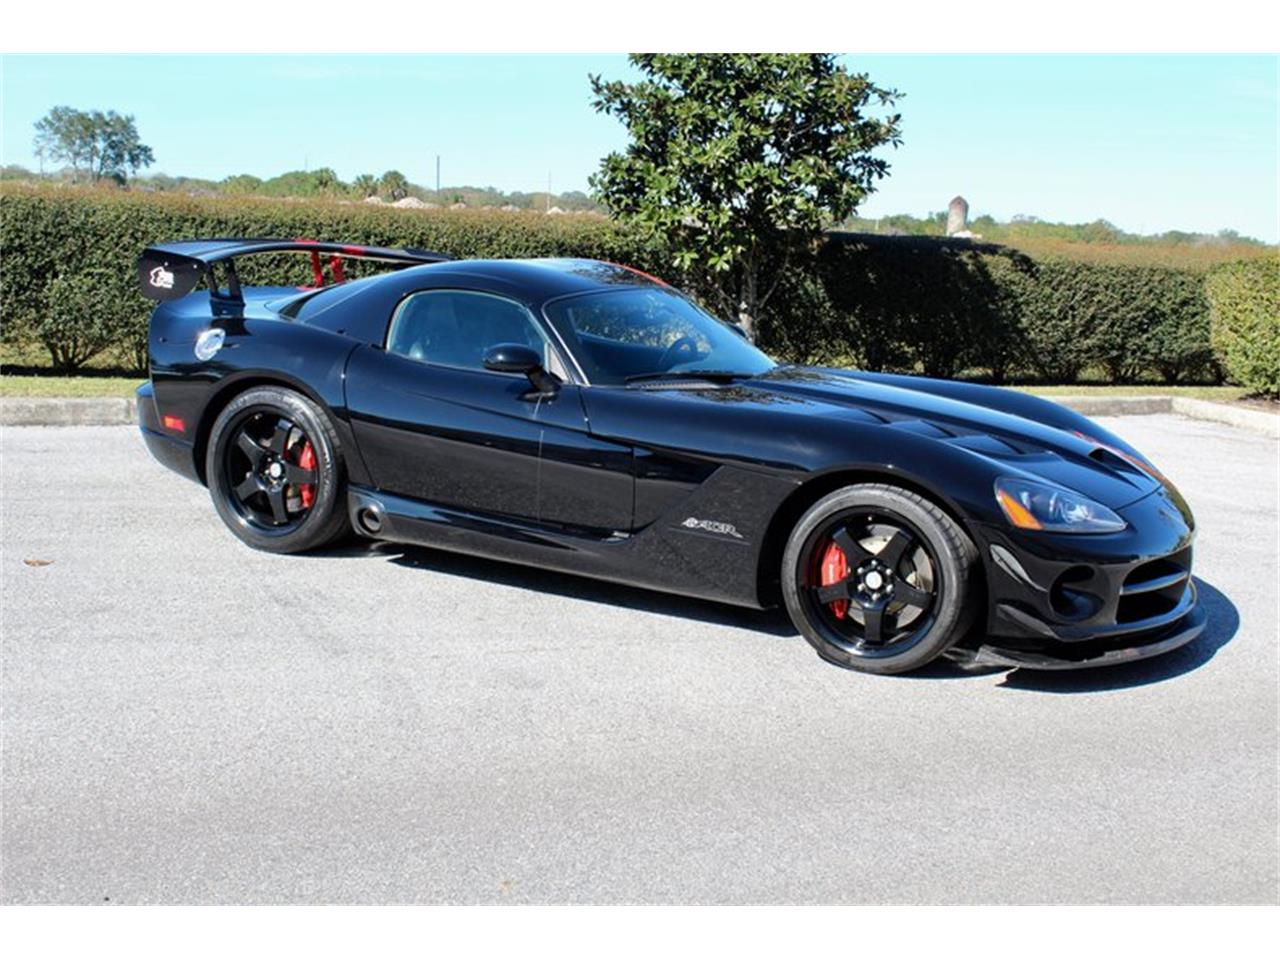 Large Picture Of 08 Dodge Viper 79 000 00 Pcp6